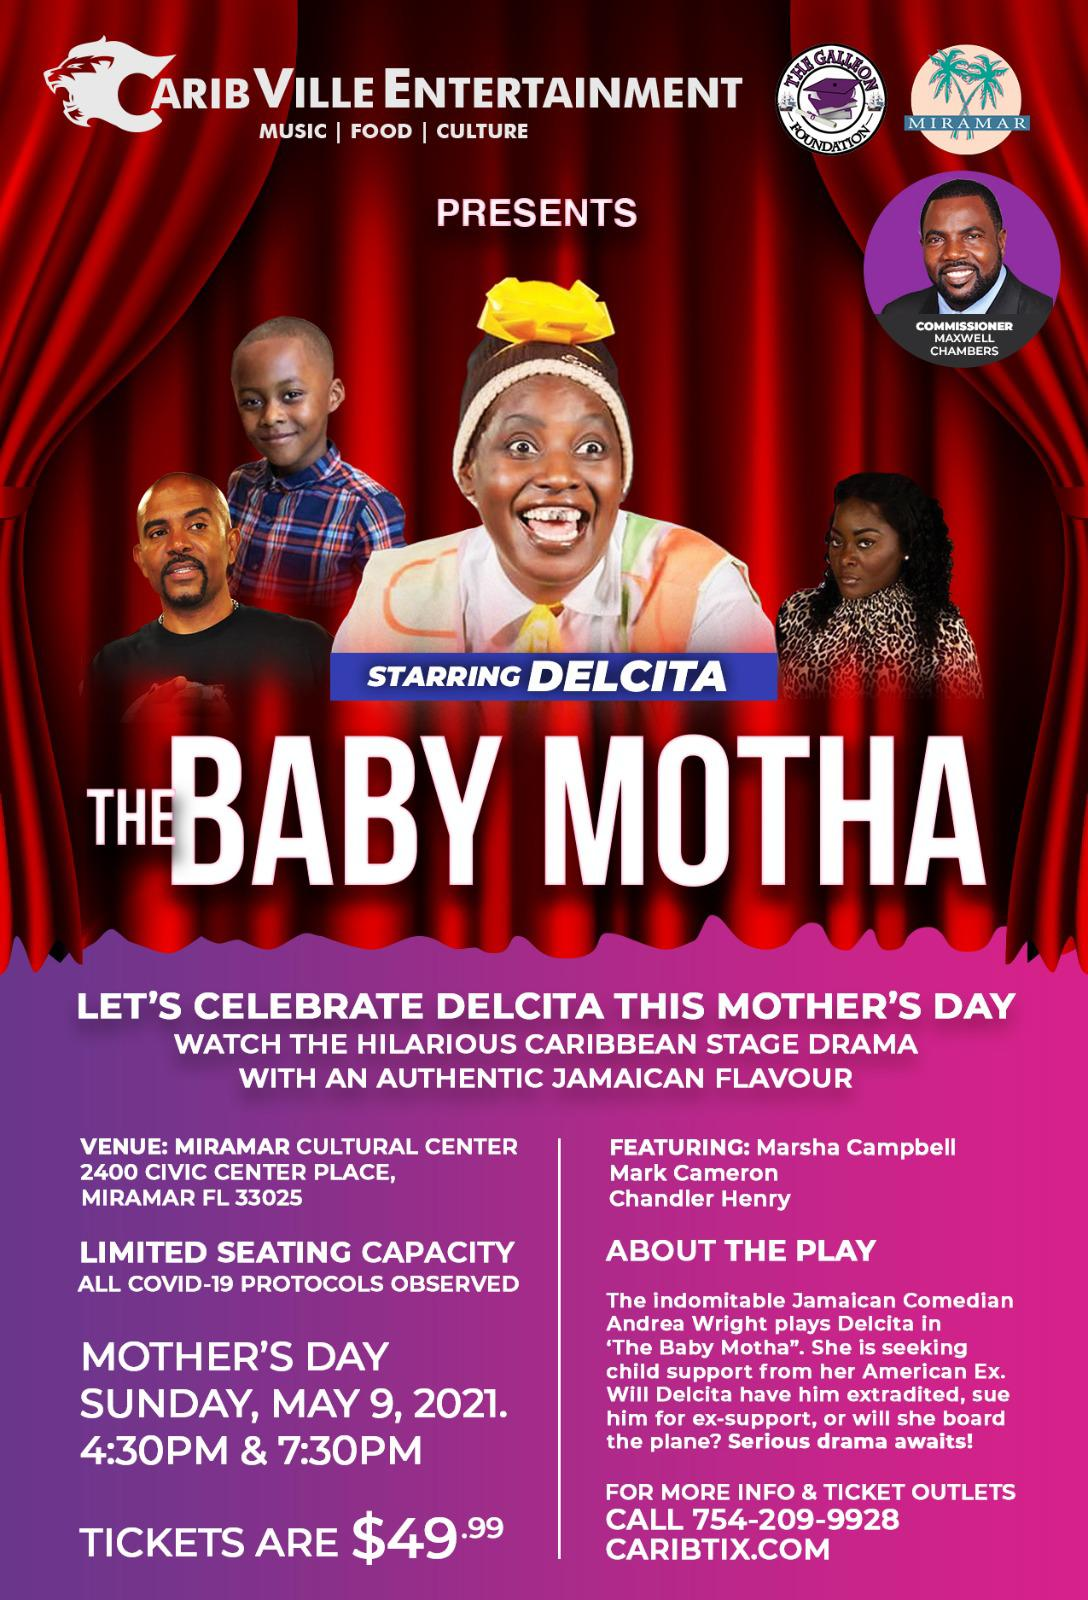 Commissioner Chambers - The Baby Motha Flyer May 9